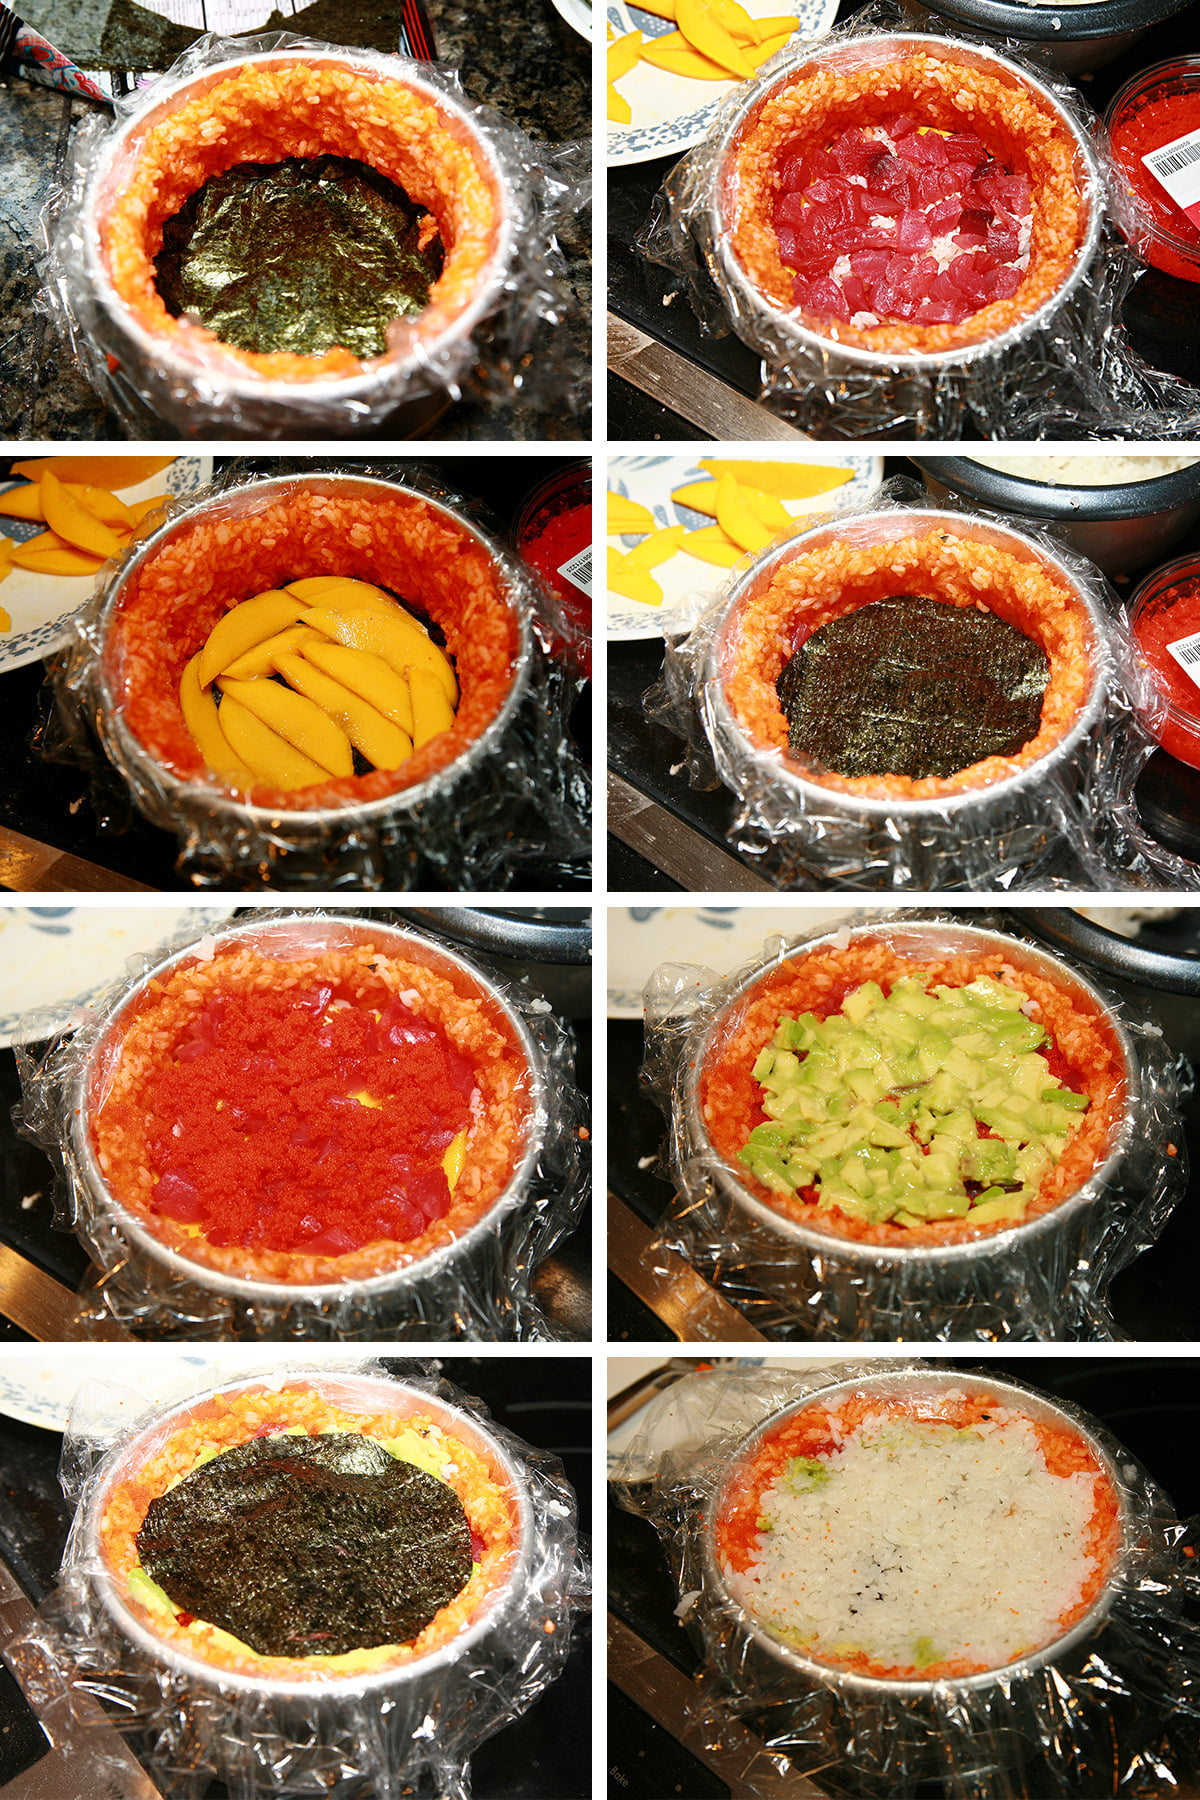 An 8 part compilation image, showing layers of fillings being added. White rice, tuna, mango, circles of nori, etc, one at a time.